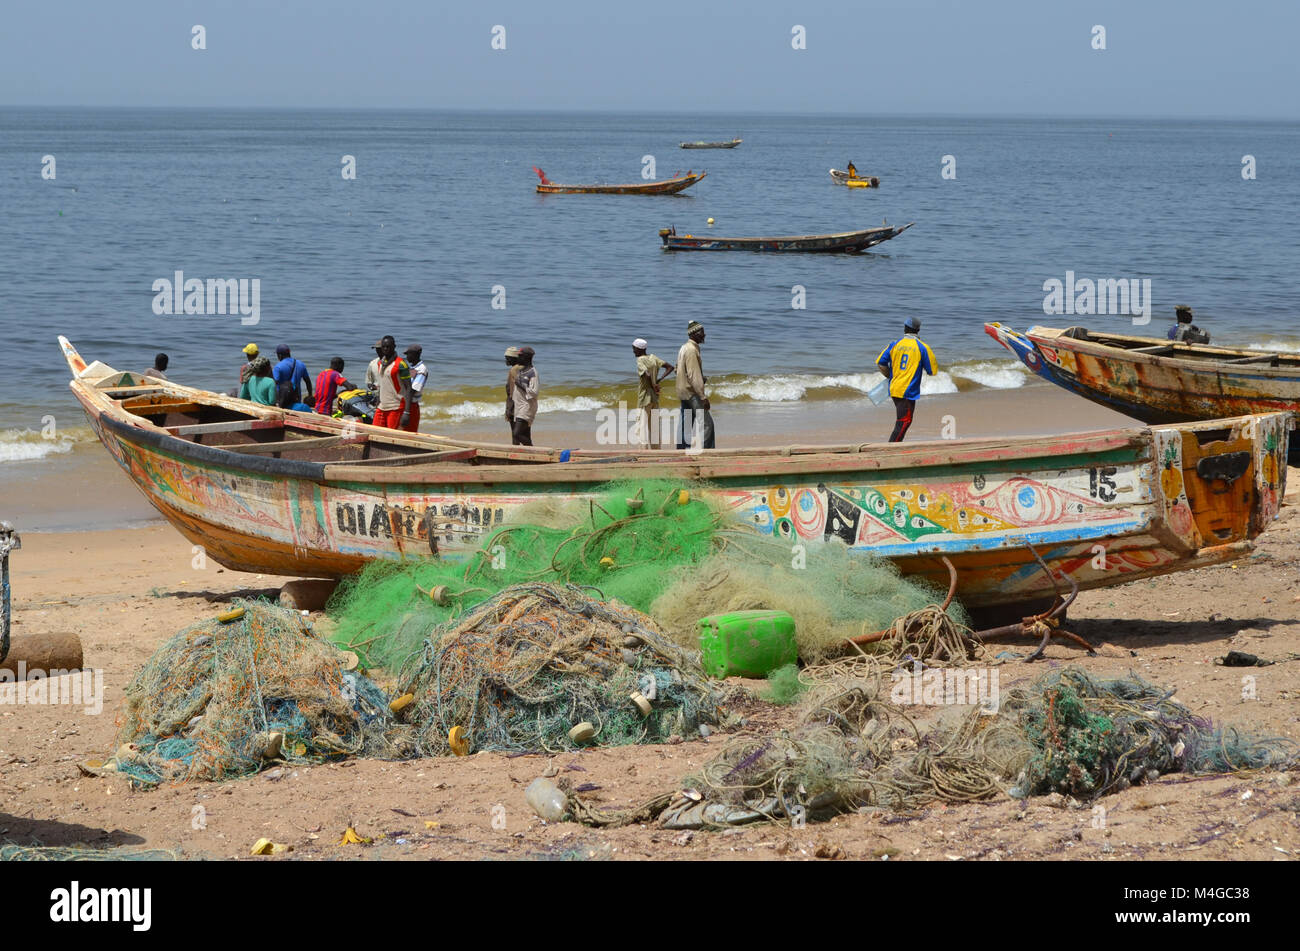 Artisanal wooden fishing boats (pirogues) in the Petite Côte, Senegal - Stock Image